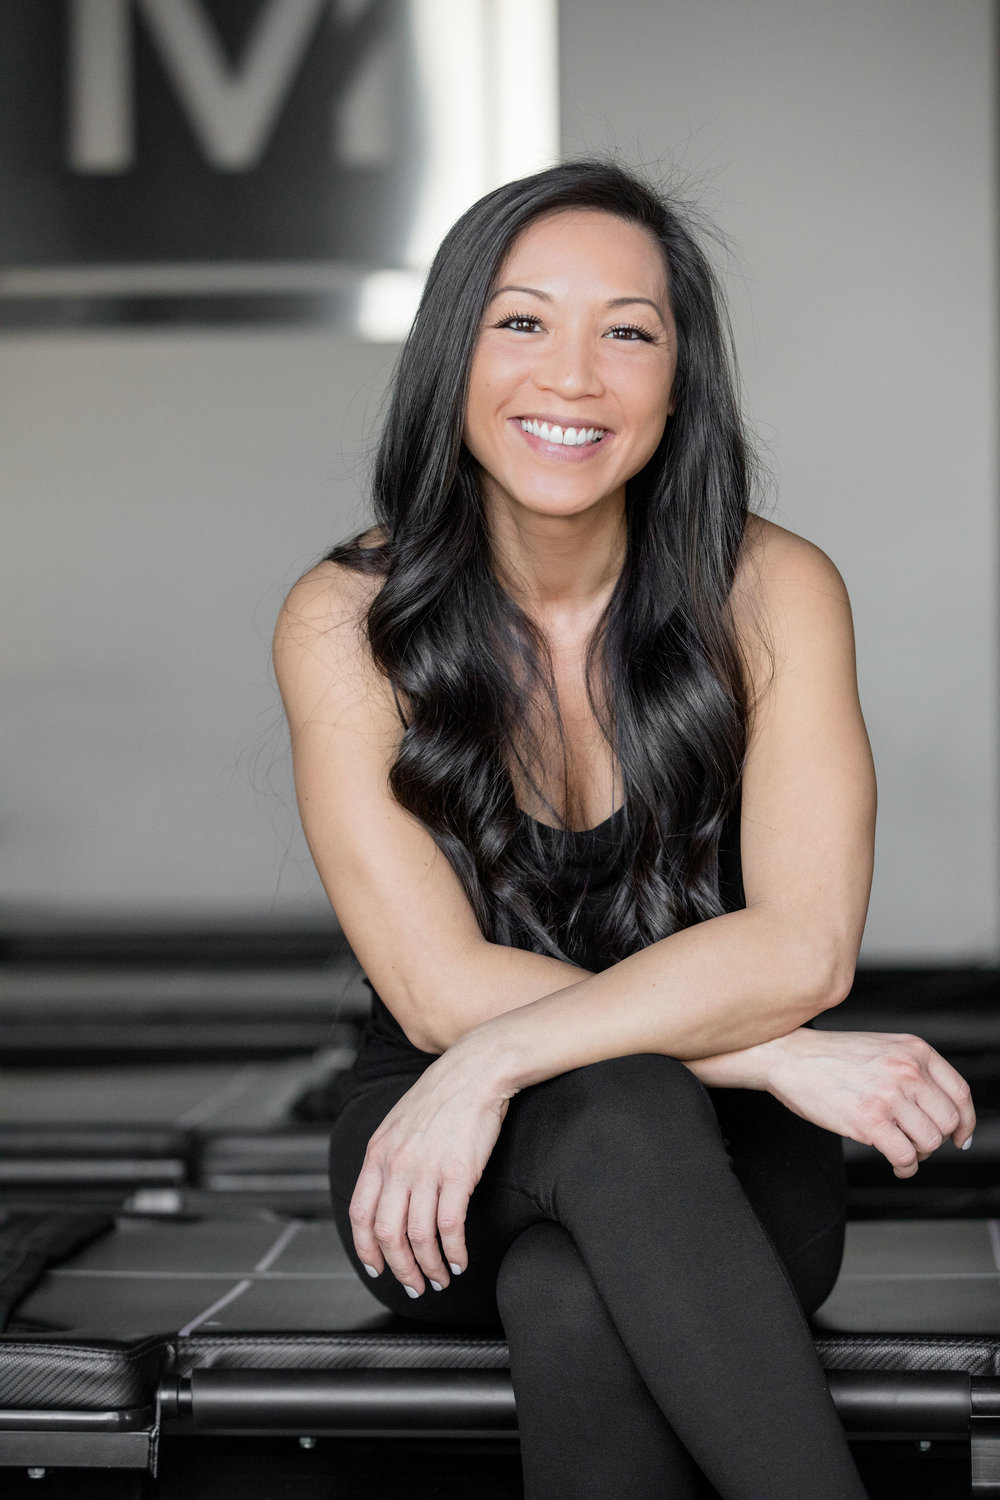 Kim  | trainer   Hometown : Upland, CA   I motivate for : Commitment. It's like a relationship; you can't cheat and expect it to work.   Fave Mega Move : Back lunge - let's get that booty right!   3 Things to know:   1. I love food  2. I'm deathly afraid of bugs  3. I constantly mispronounce words   @kim_thien_mints